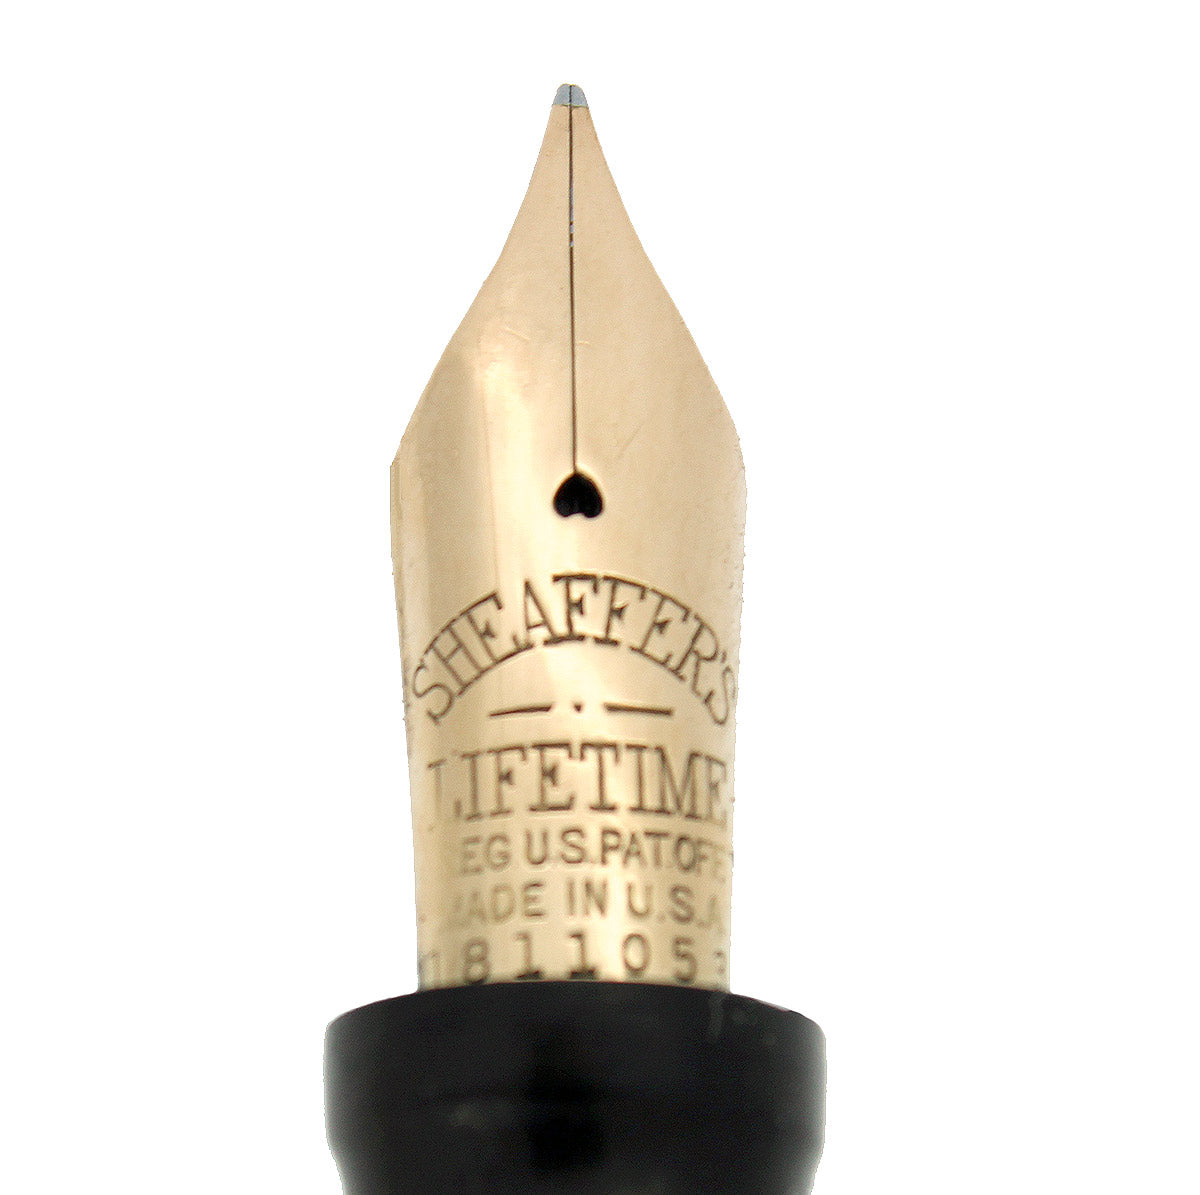 CIRCA 1935 SHEAFFER OVERSIZE BLACK & PEARL BALANCE FOUNTAIN PEN RESTORED NEAR MINT OFFERED BY ANTIQUE DIGGER